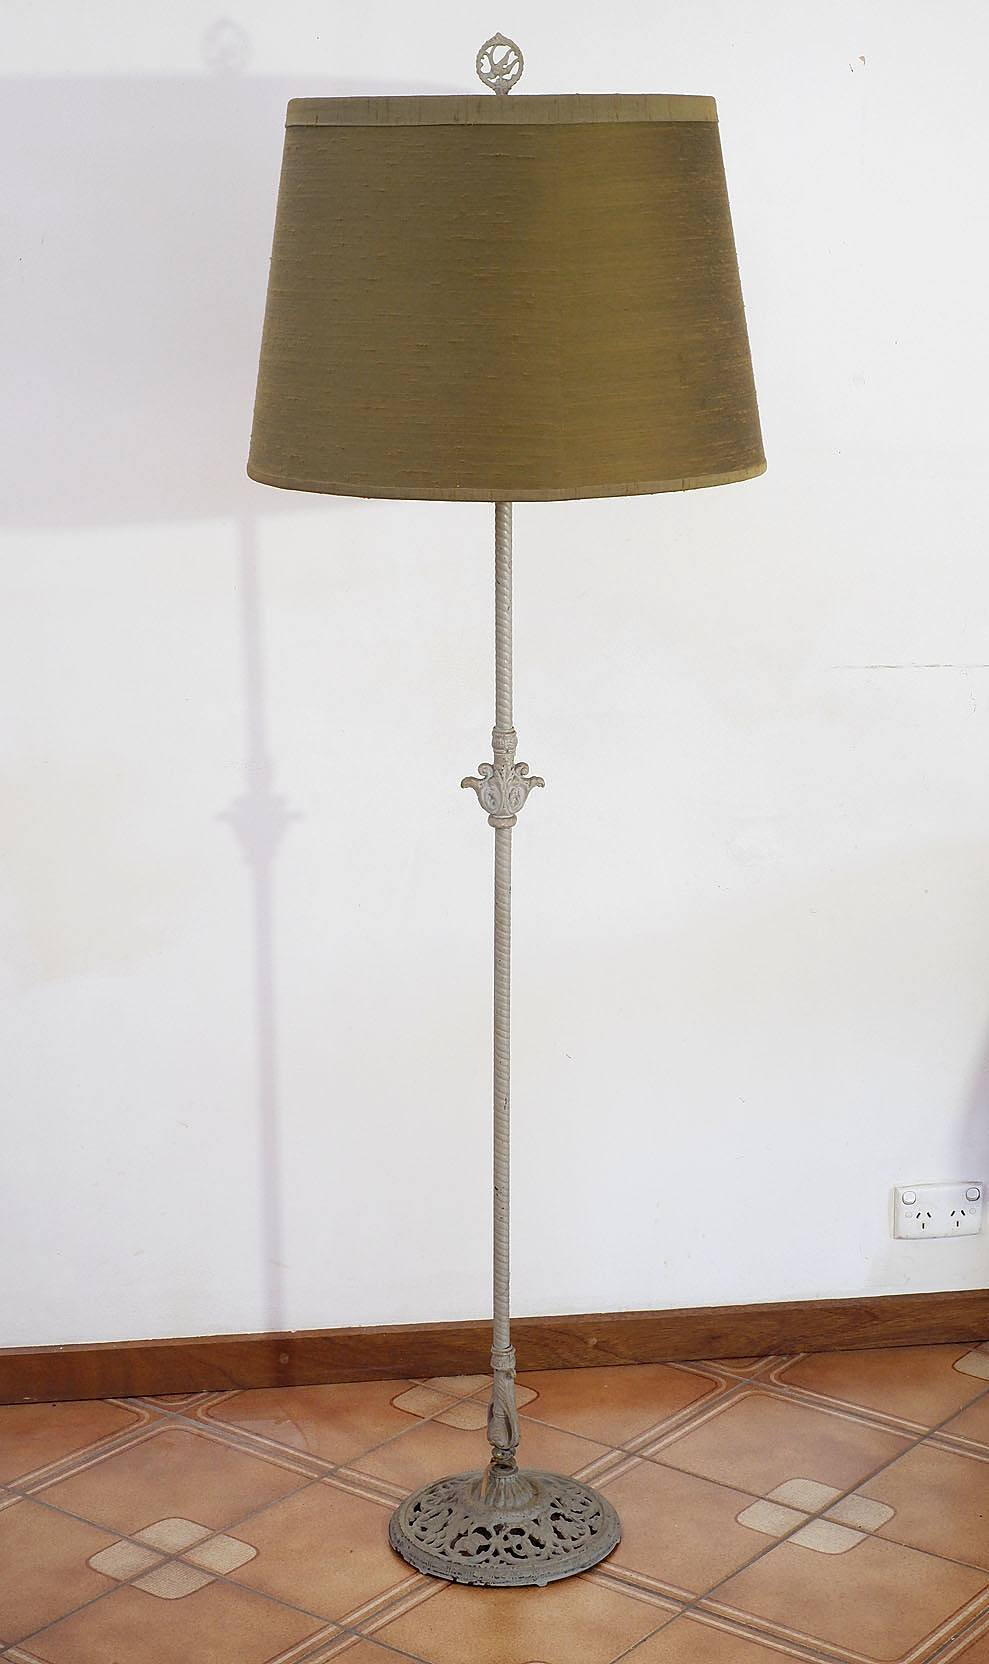 'Vintage Cast Metal Standard Lamp, Early to Mid 20th Century'